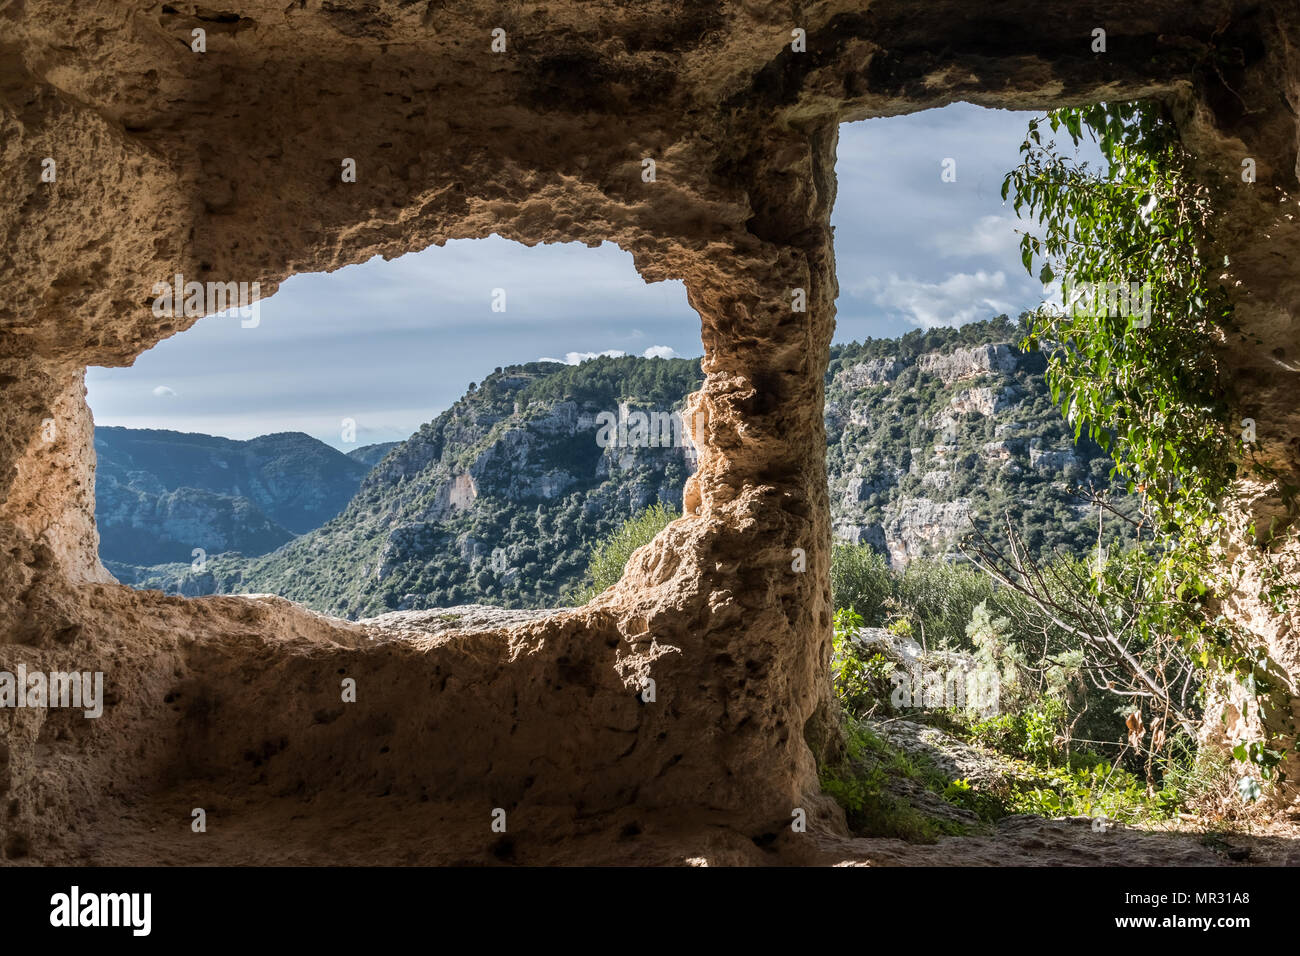 Interior of a tomb in Pantalica, a necropolis in Sicily - Stock Image